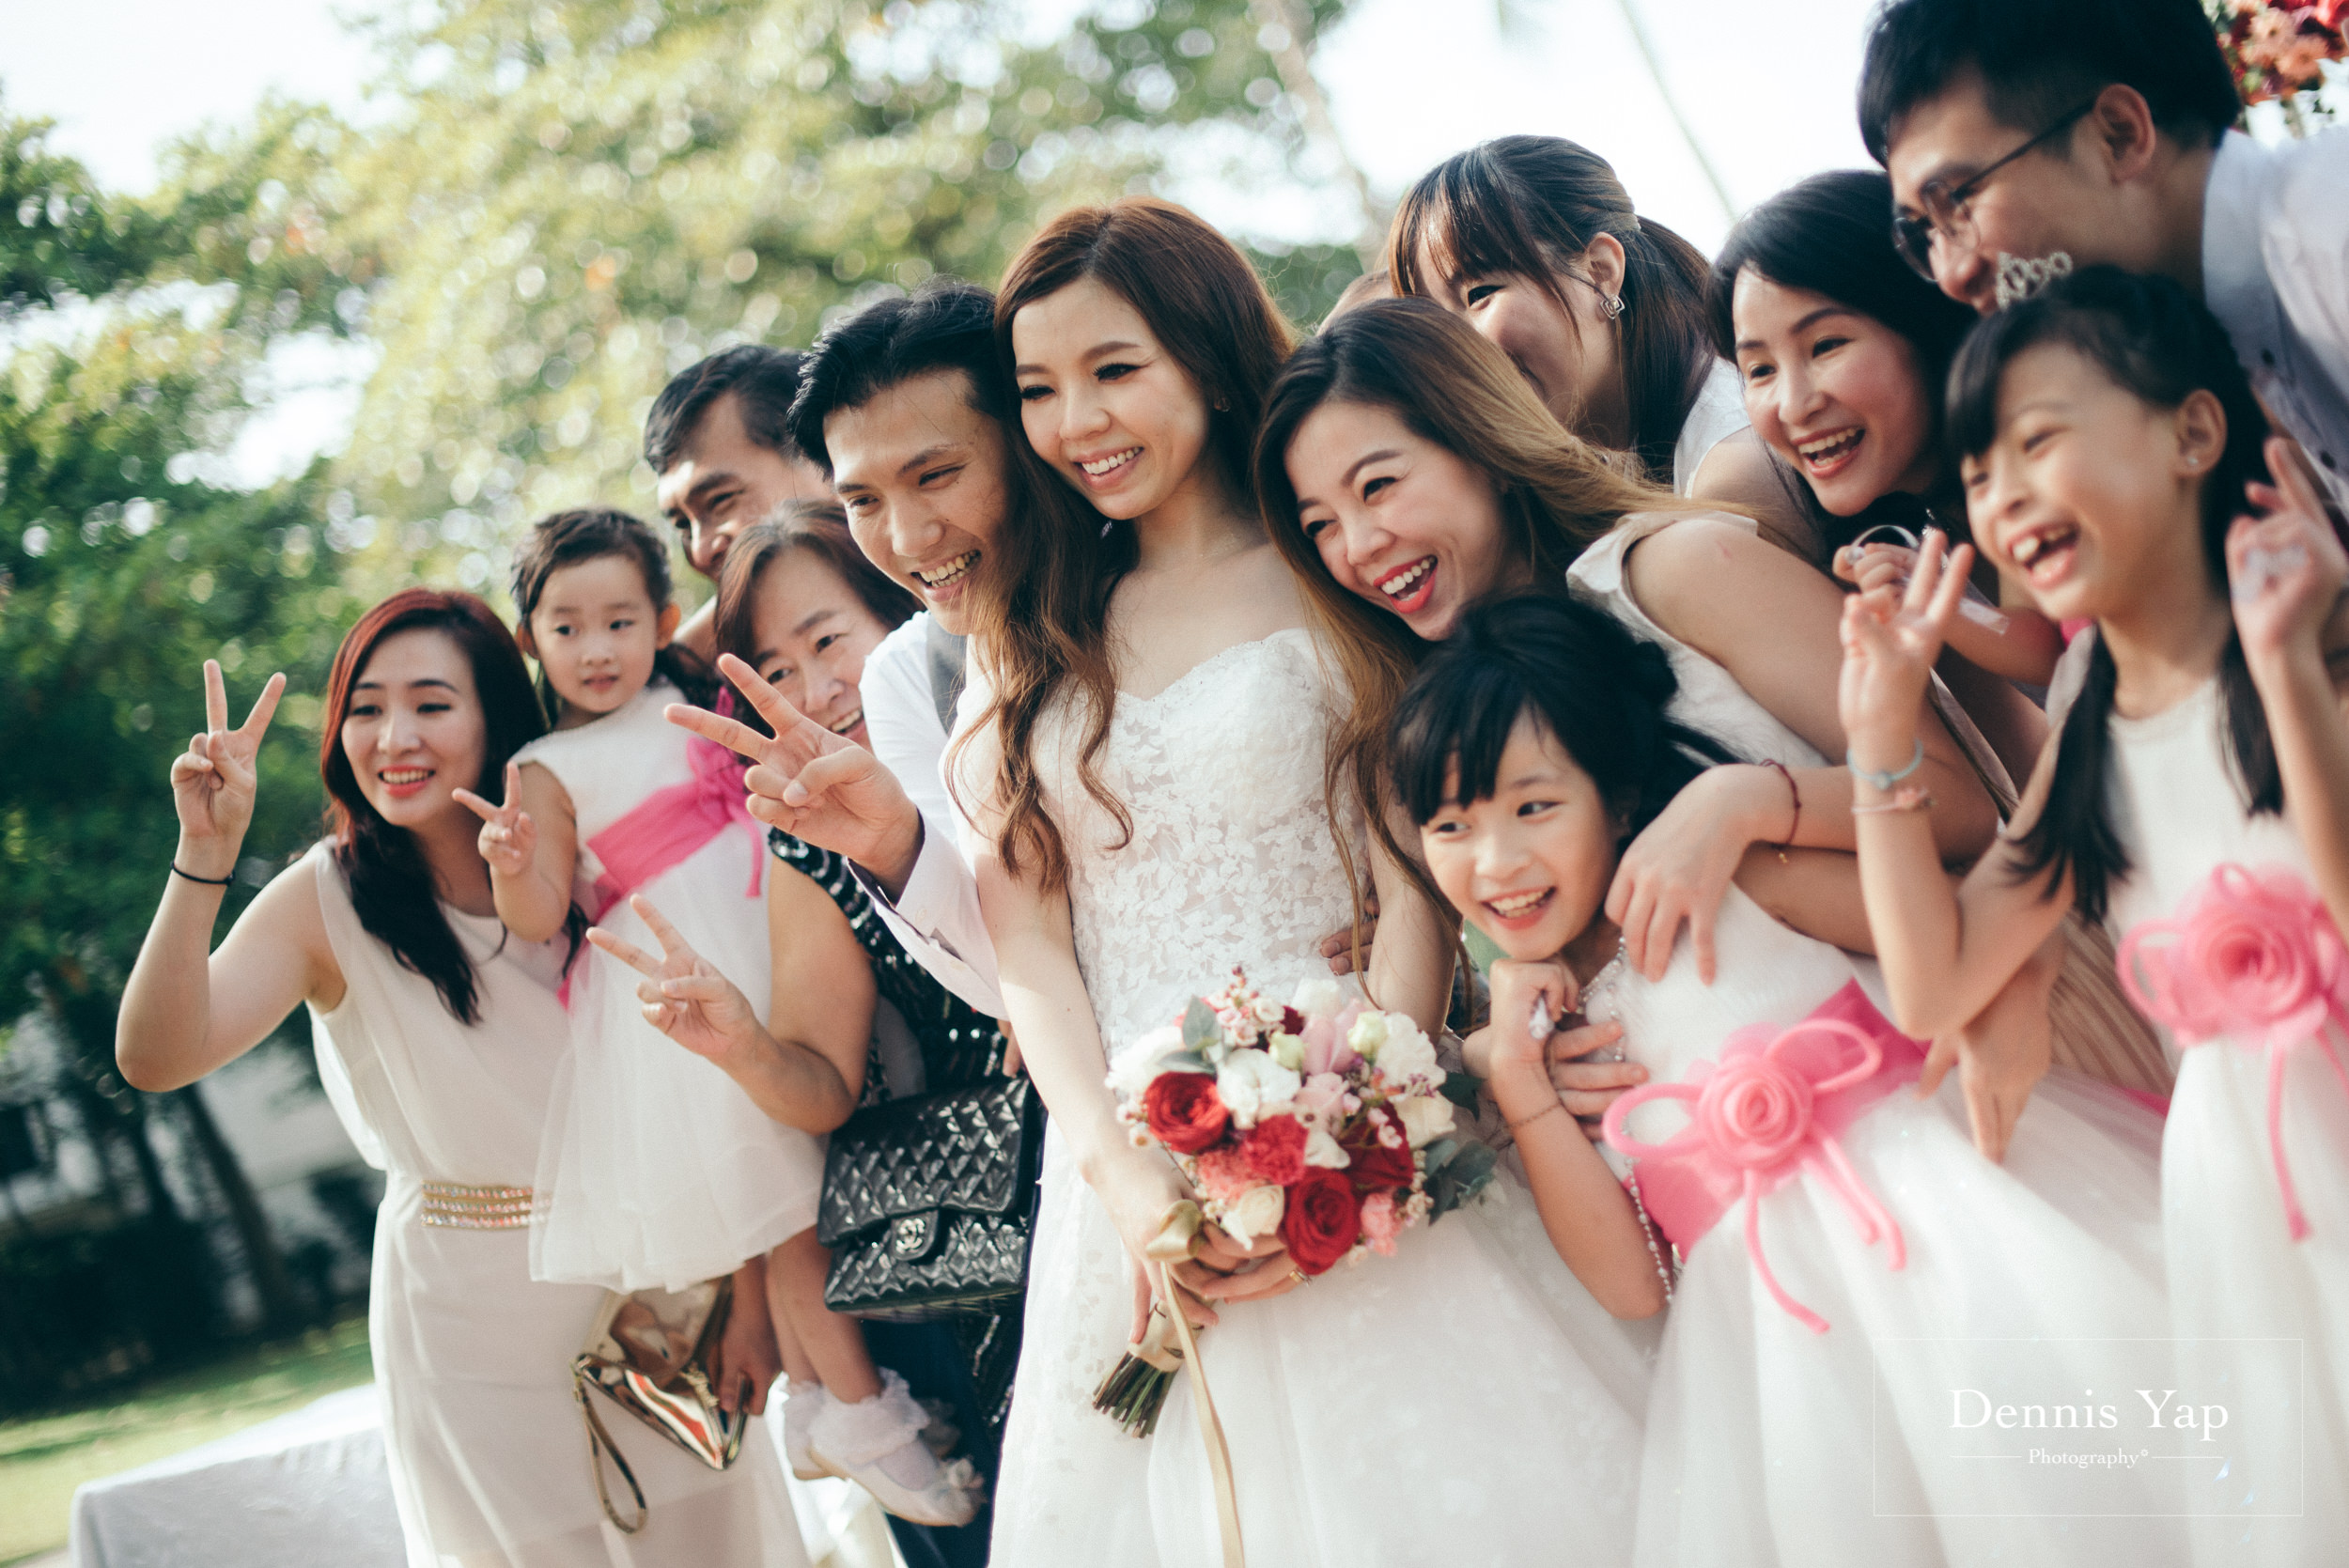 CT Annie garden wedding saujana subang jaya dennis yap photography IT malaysia top photographer-19.jpg